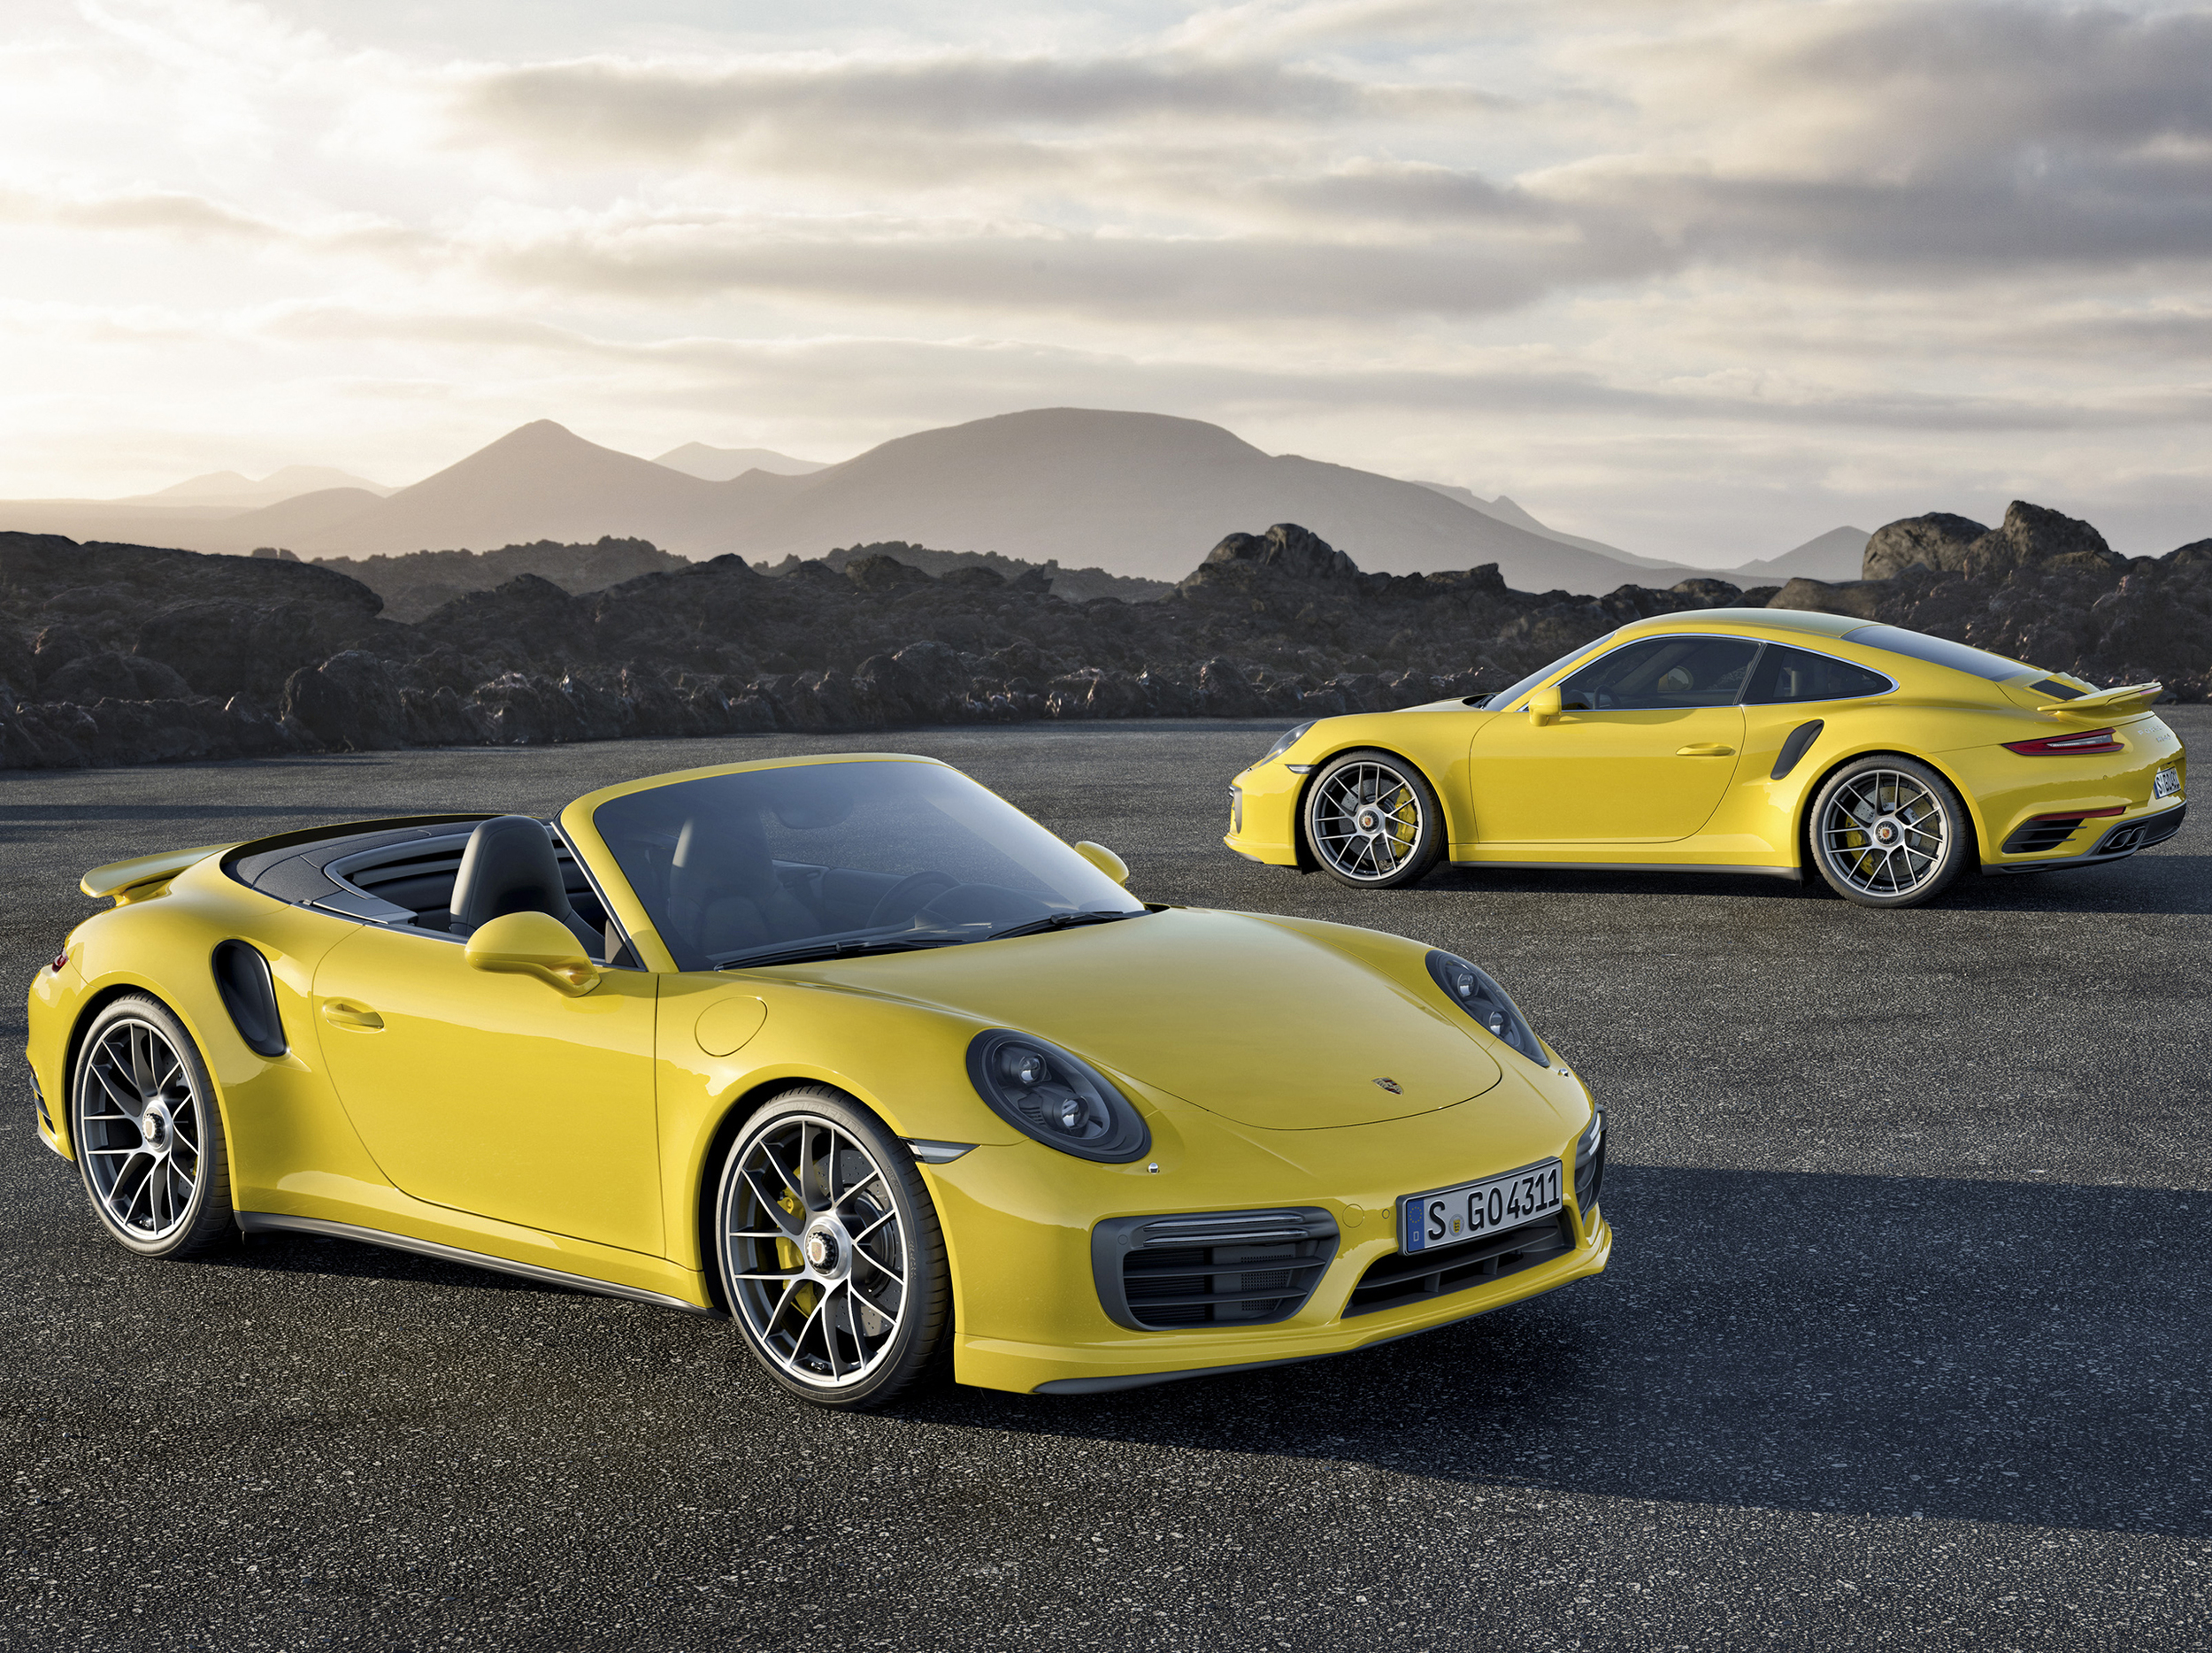 Facelifted Porsche 911 Turbo revealed